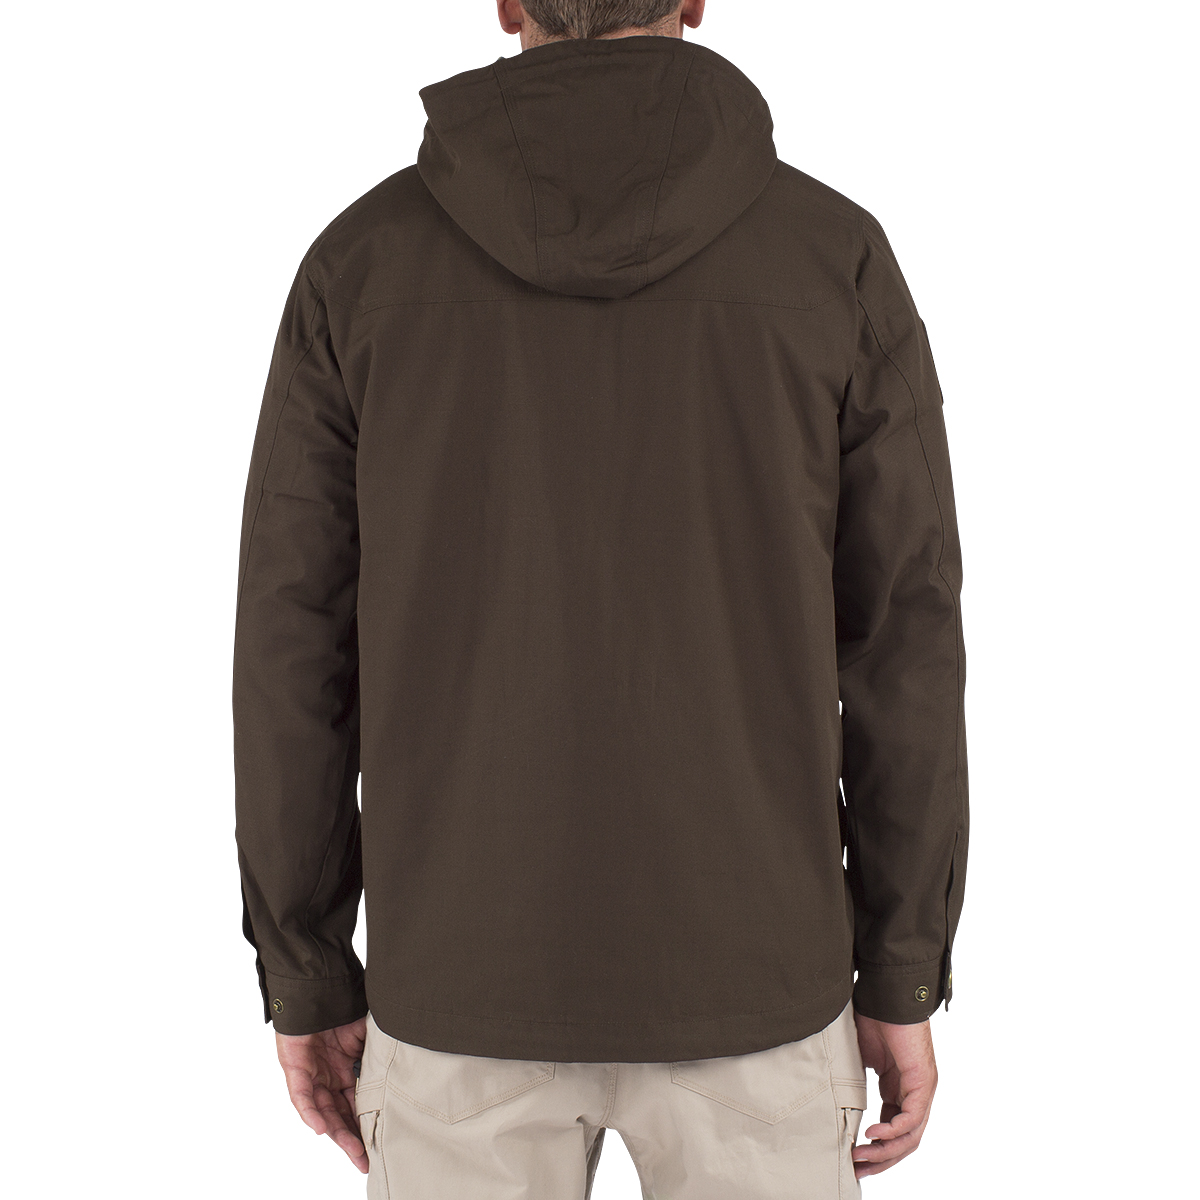 5.11 Taclite Anorak Tactical Military Concealed Carry Hooded ...